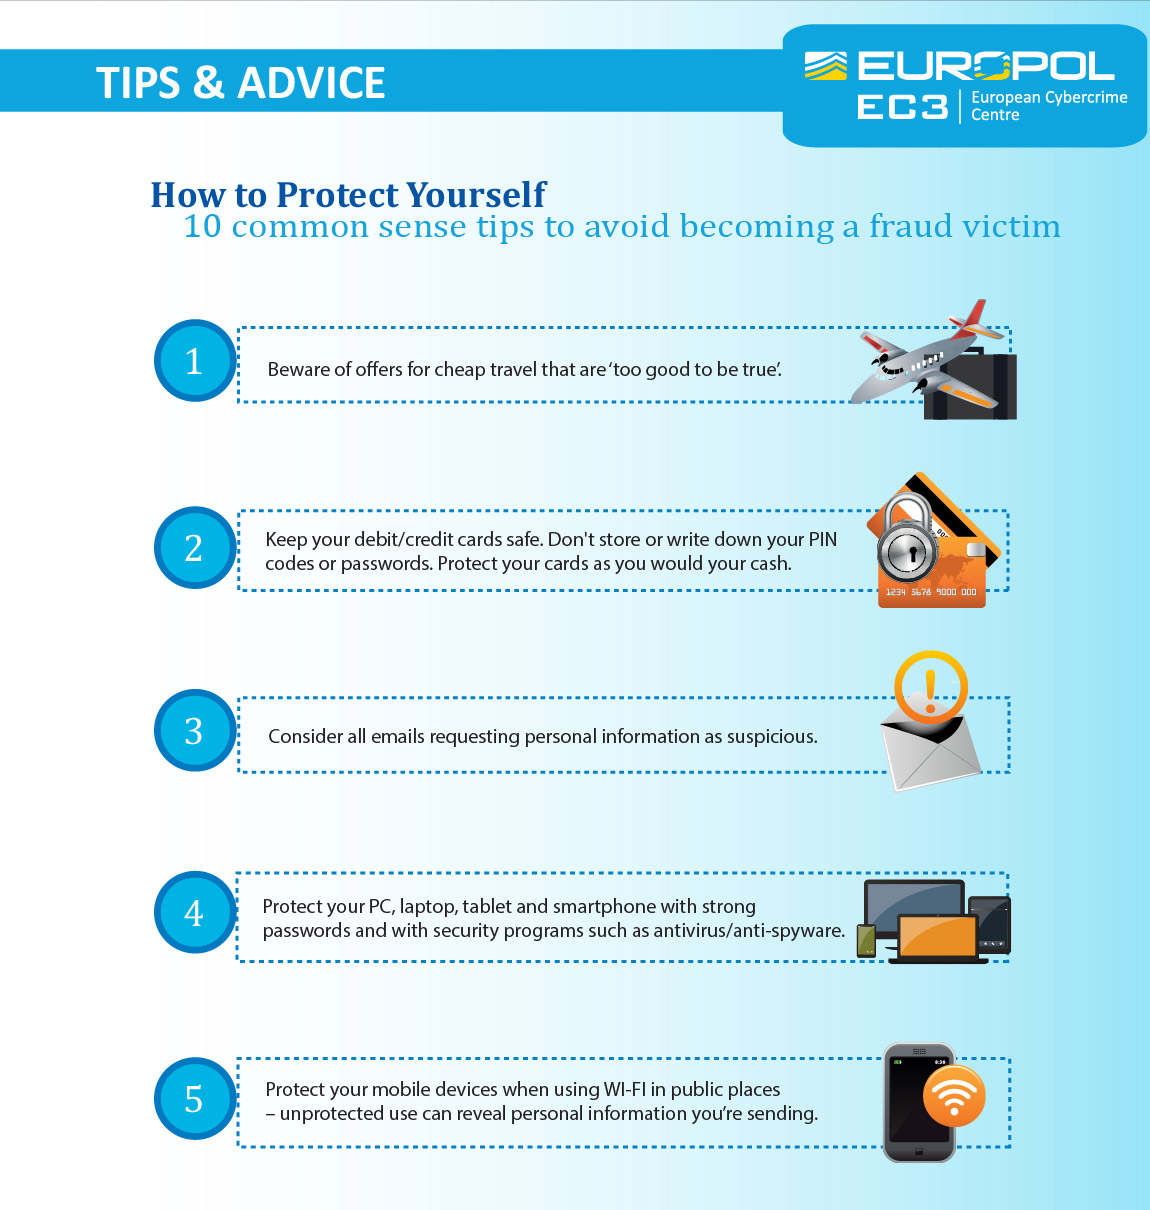 10 common sense tips to avoid becoming a fraud victim ...